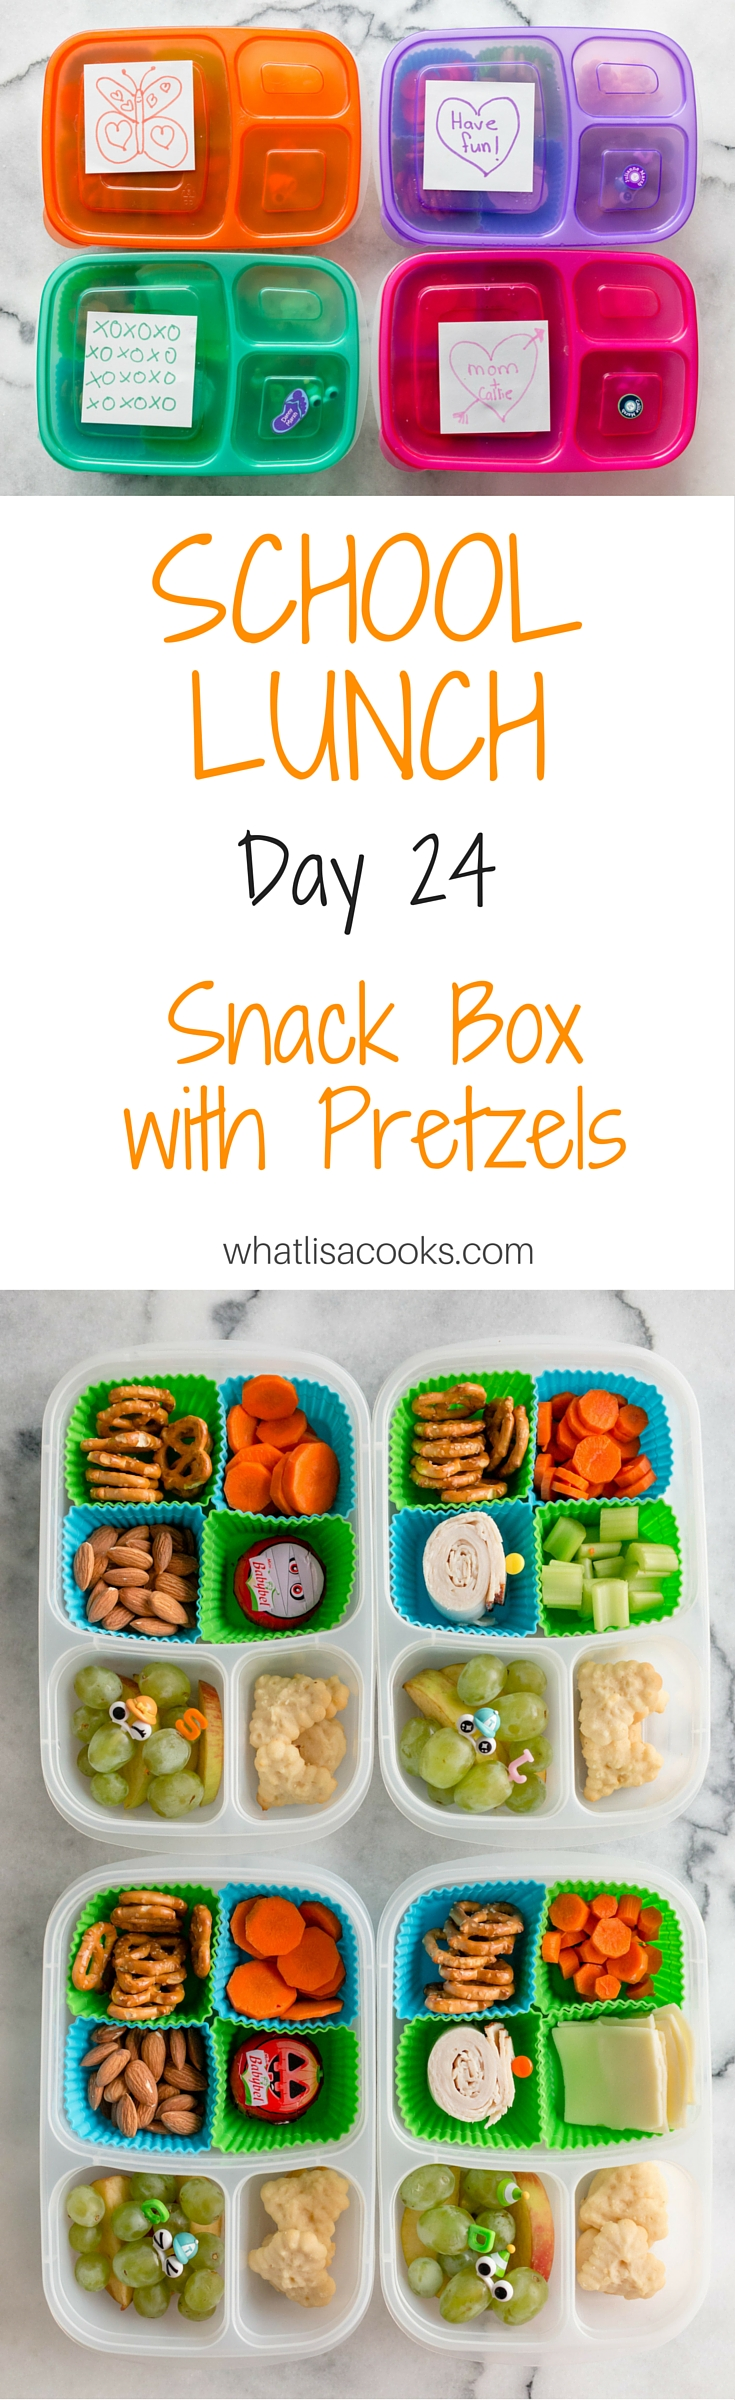 easy school lunch idea - a homemade lunchable with pretzels and a cookie | whatlisacooks.com